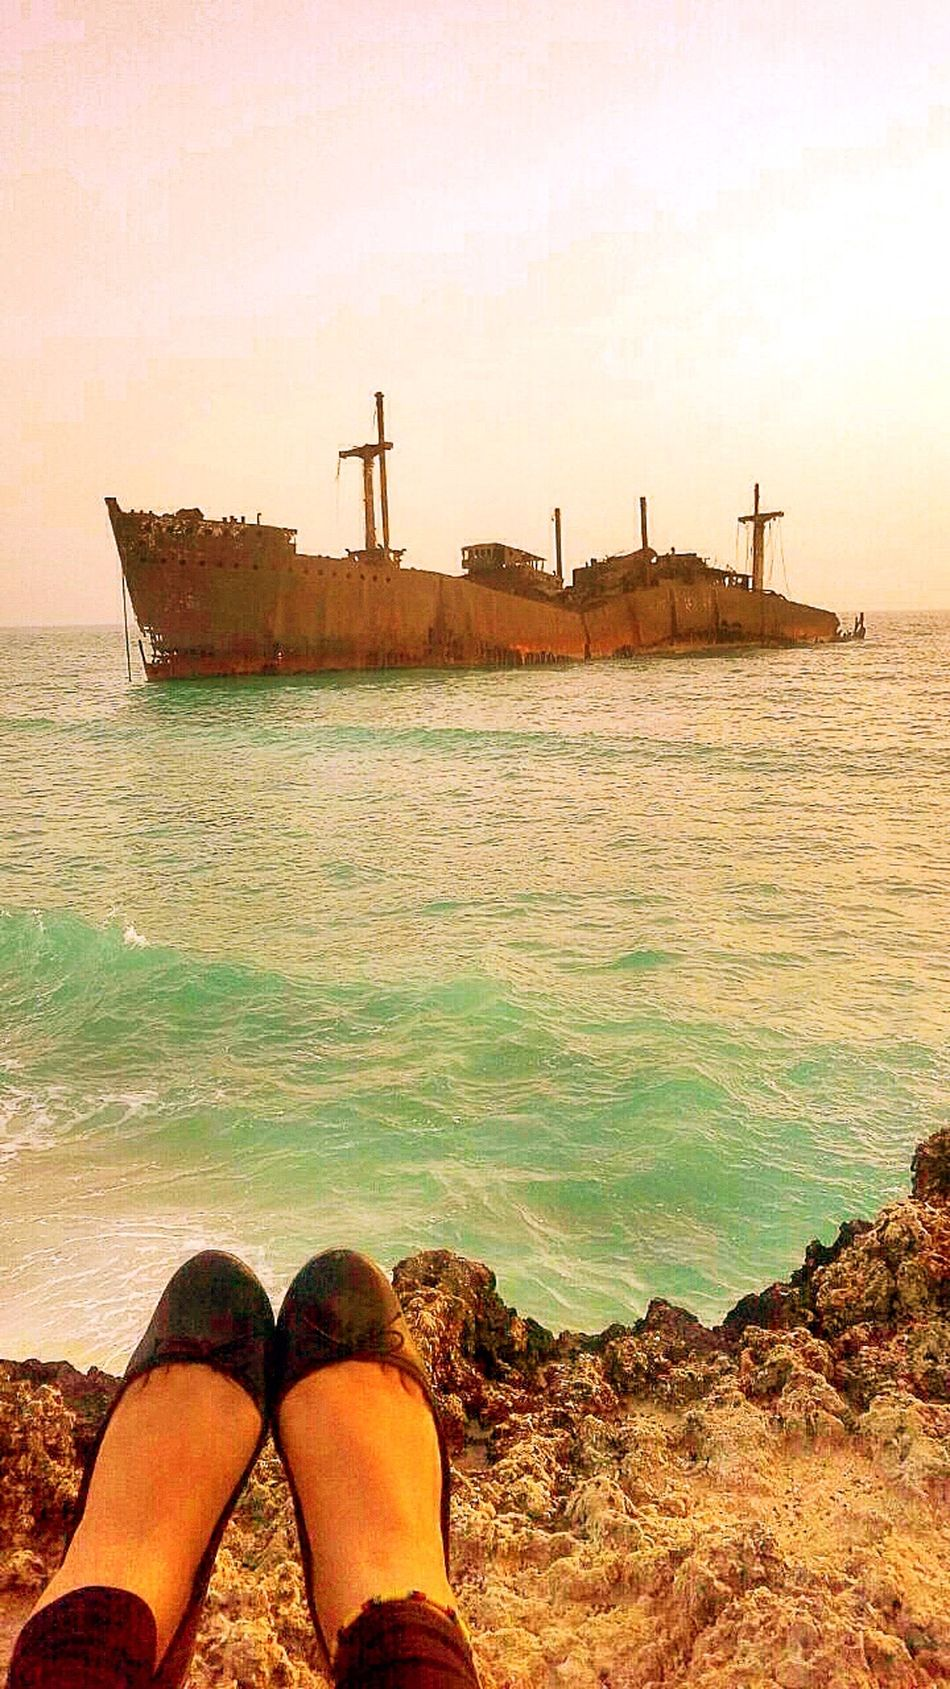 i always believed that God has a plan and i have a purpose so whatever it may be im grateful to set foot in this beutiful island of Kish ☝🏻🙏🏻👍🏻🙌🏻🐾 Hello World OhyesIamblessed GOD's Creation ツ WheninKish Greekship Thankyouforthememories :3